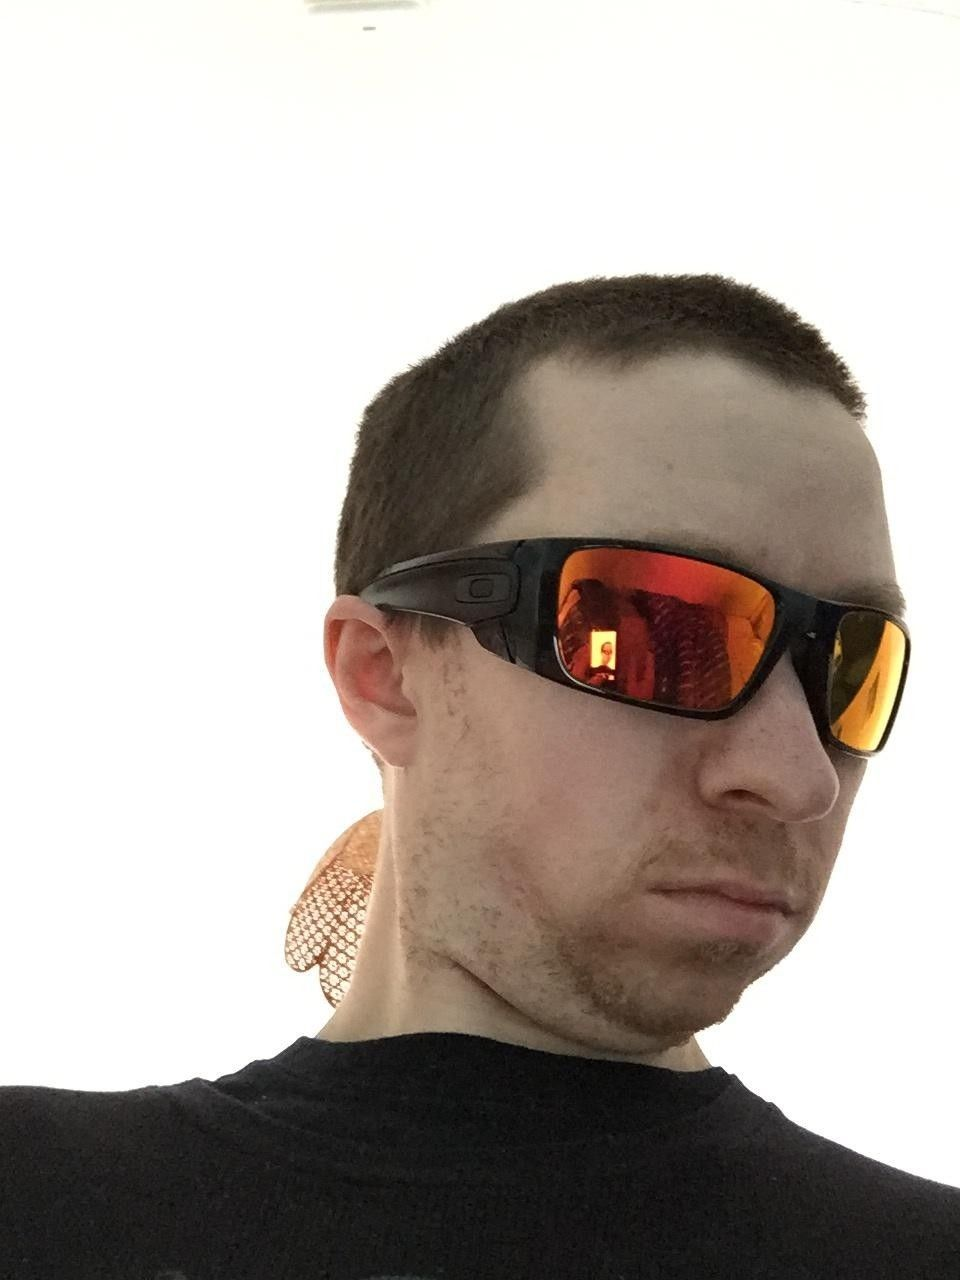 Best suited Oakleys for me - GNzGeRO.jpg